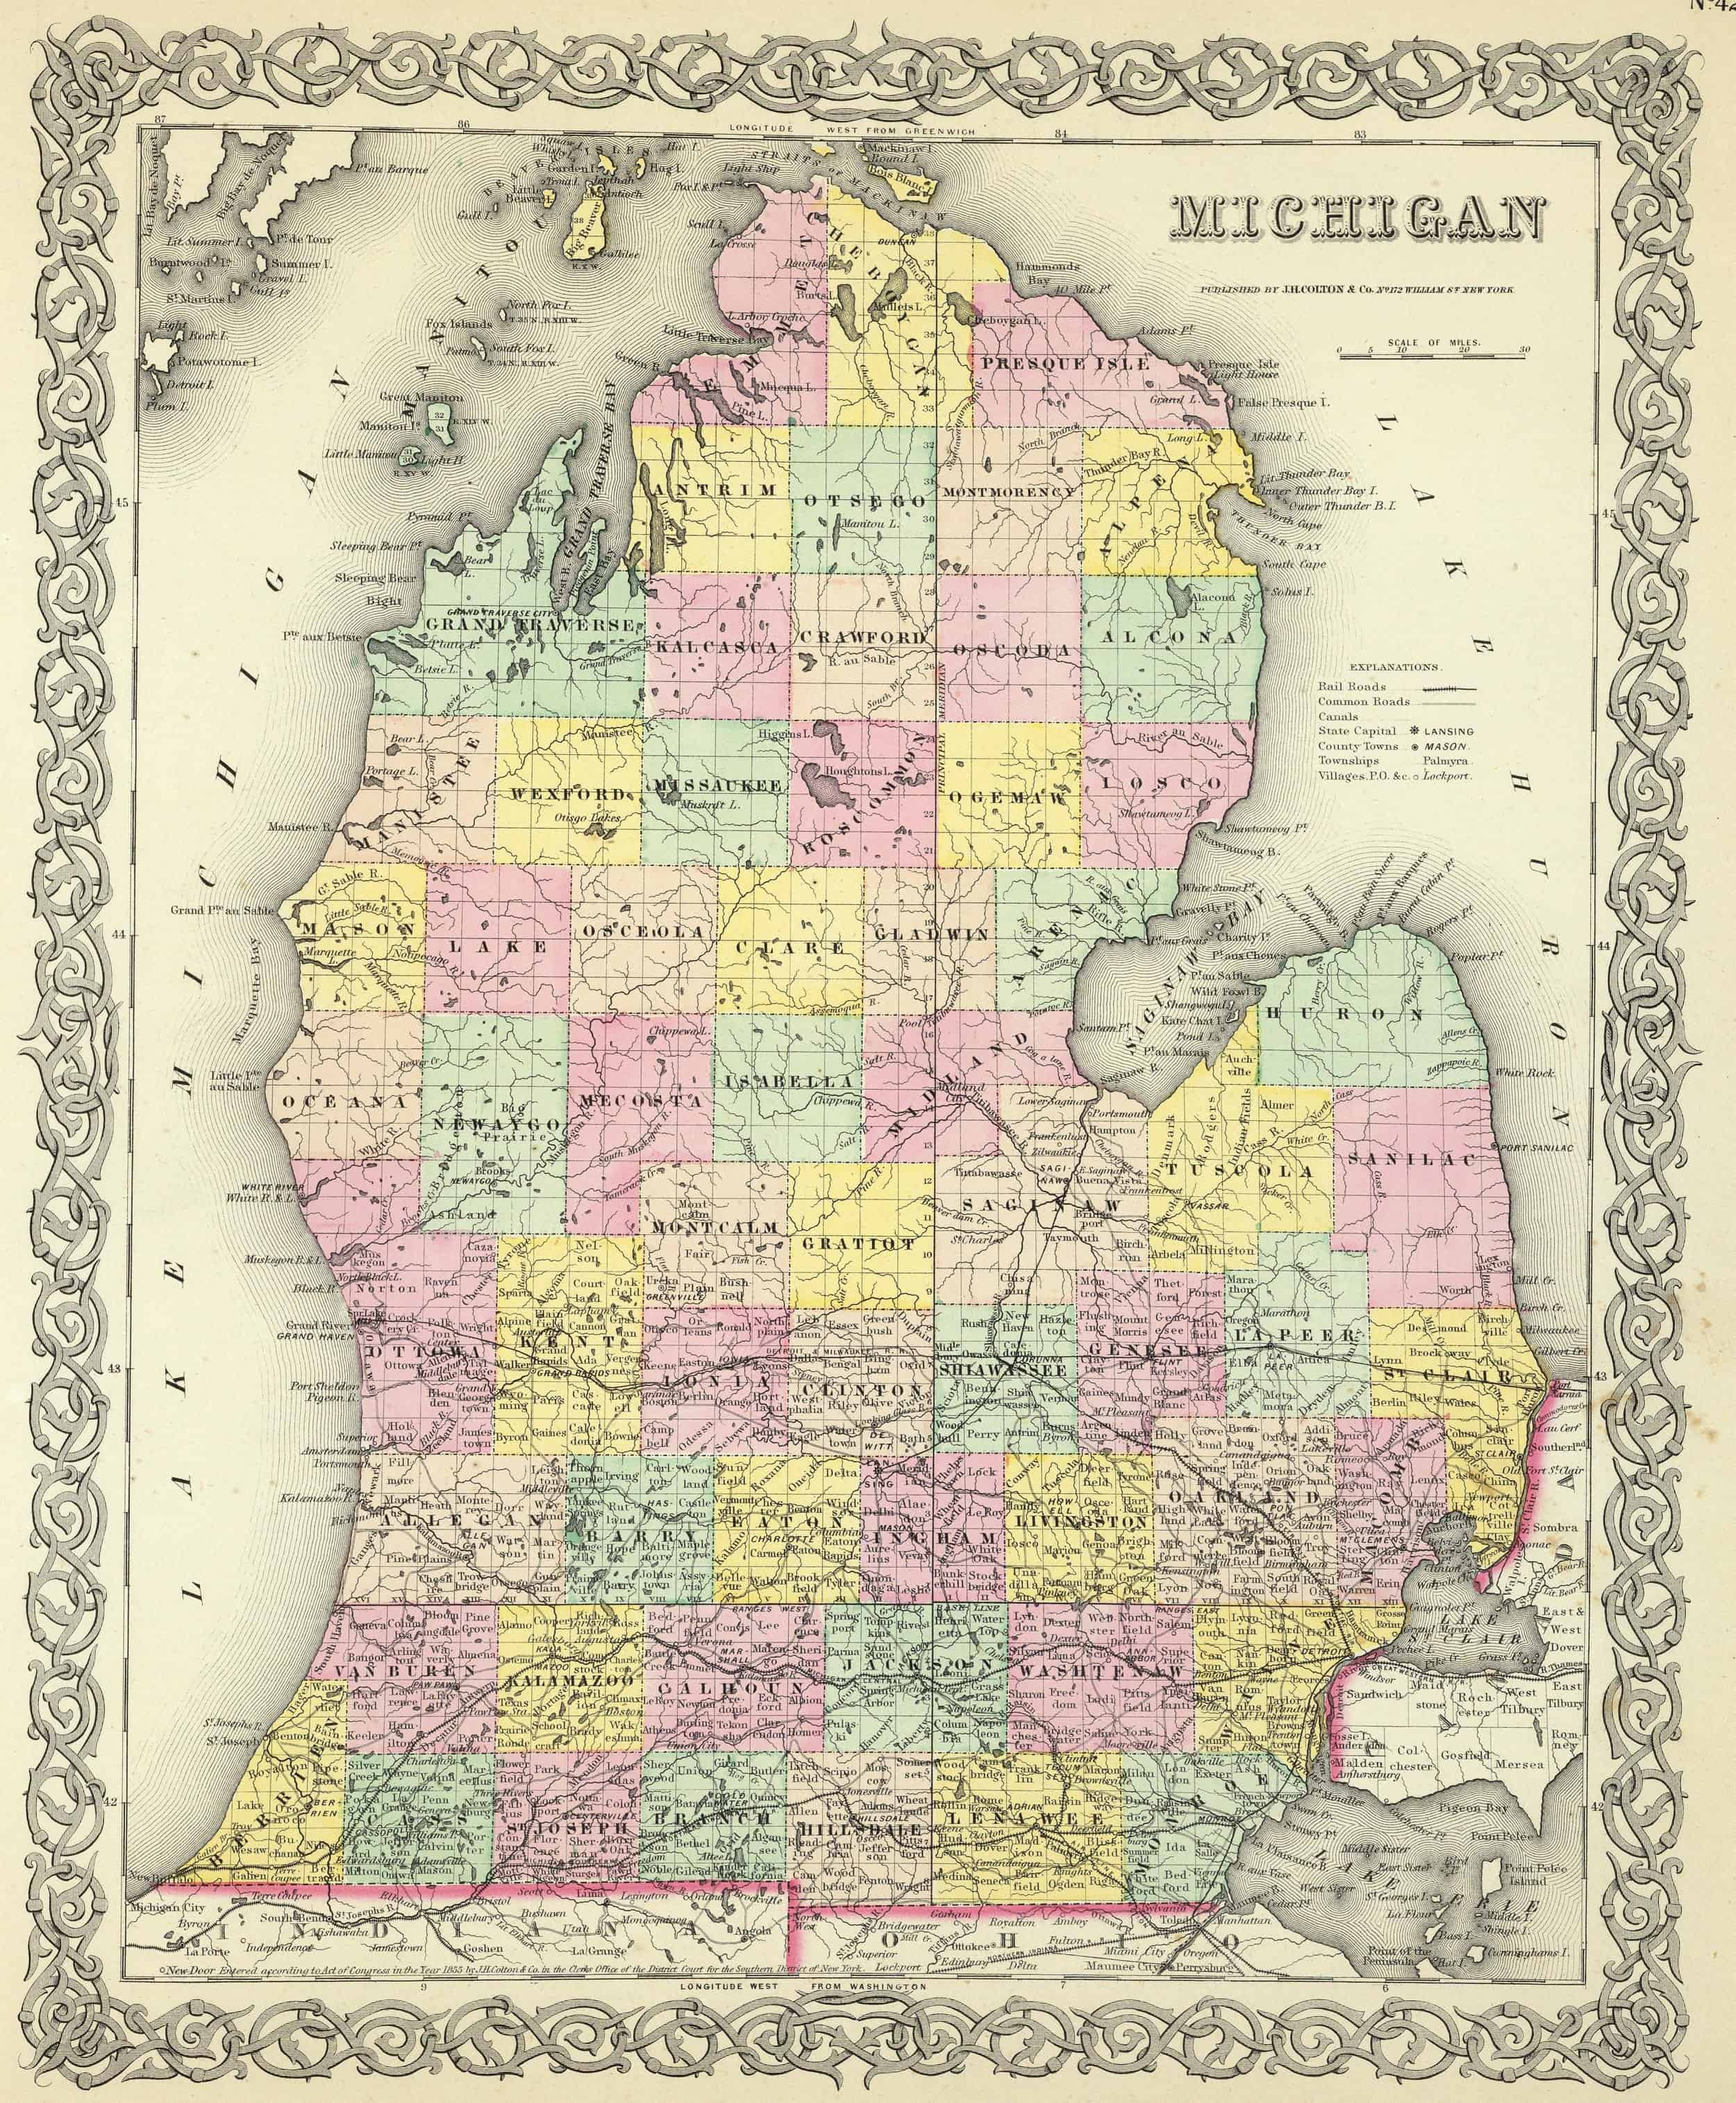 Old Historical City, County and State Maps of Michigan on erie county plat map, jackson county plat map, fulton county plat map, huron county plat map, okfuskee county plat map, saginaw county plat map, yellow medicine county plat map, kalkaska county plat map, lenawee county plat map, grant county plat map, cambria county plat map, somerset county plat map, union county plat map, gaines county plat map, lake county plat map, grand traverse county plat map, camden county plat map, ida county plat map, st clair county plat map, clayton county plat map,